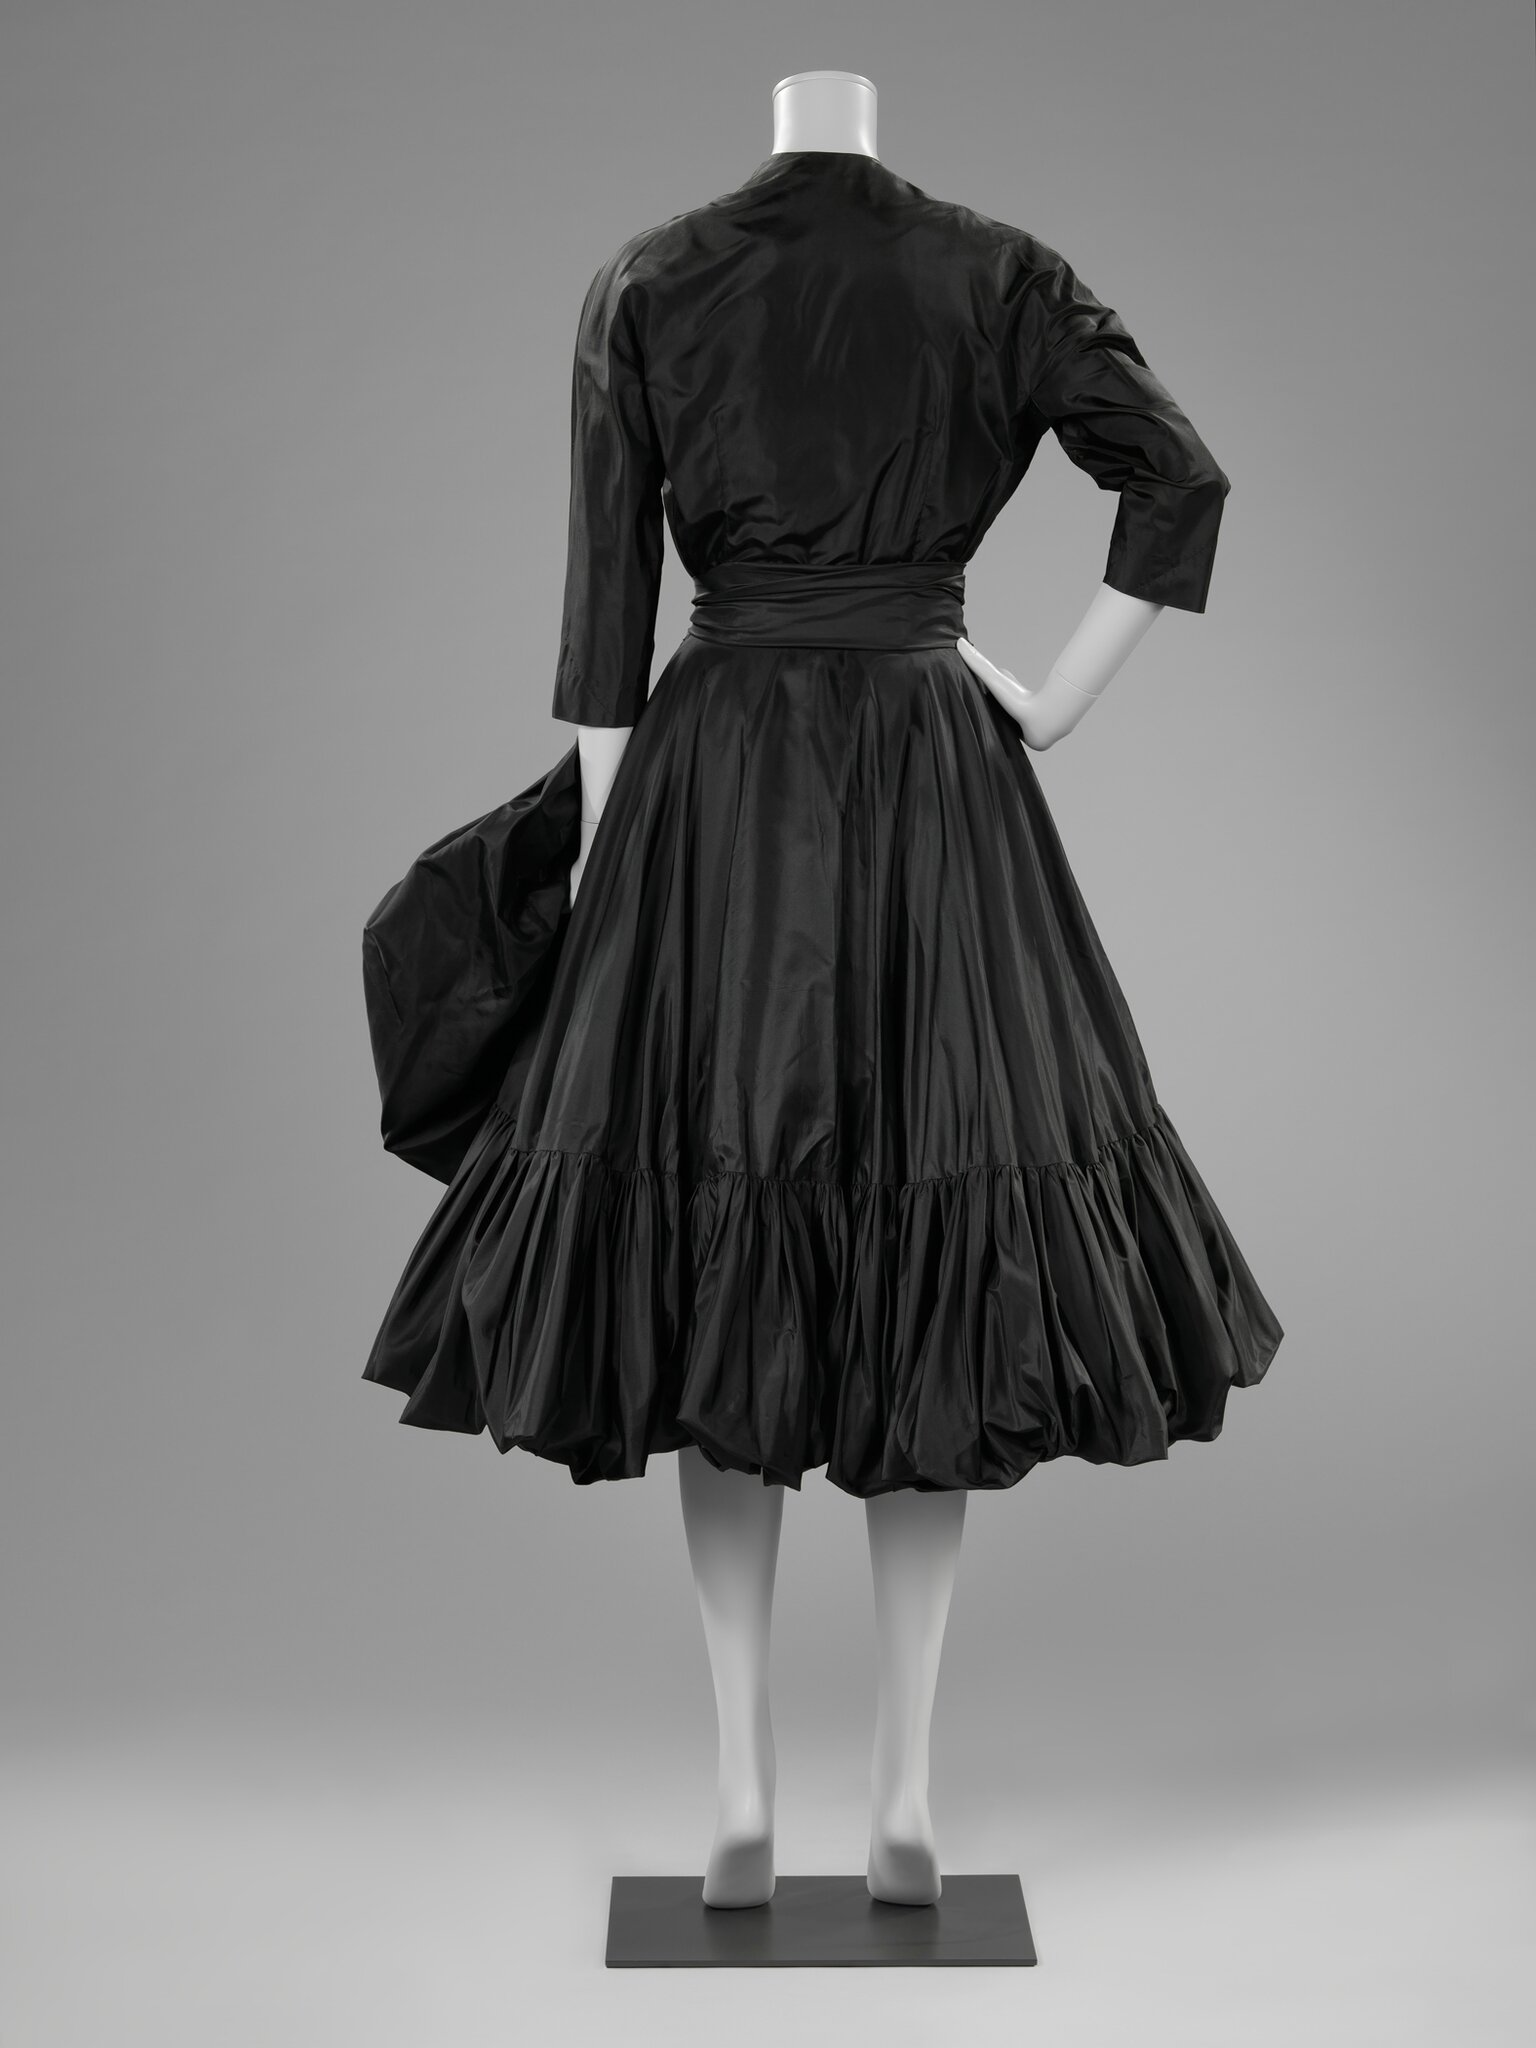 Cocktail dress, Cristóbal Balenciaga (1951-1952), back